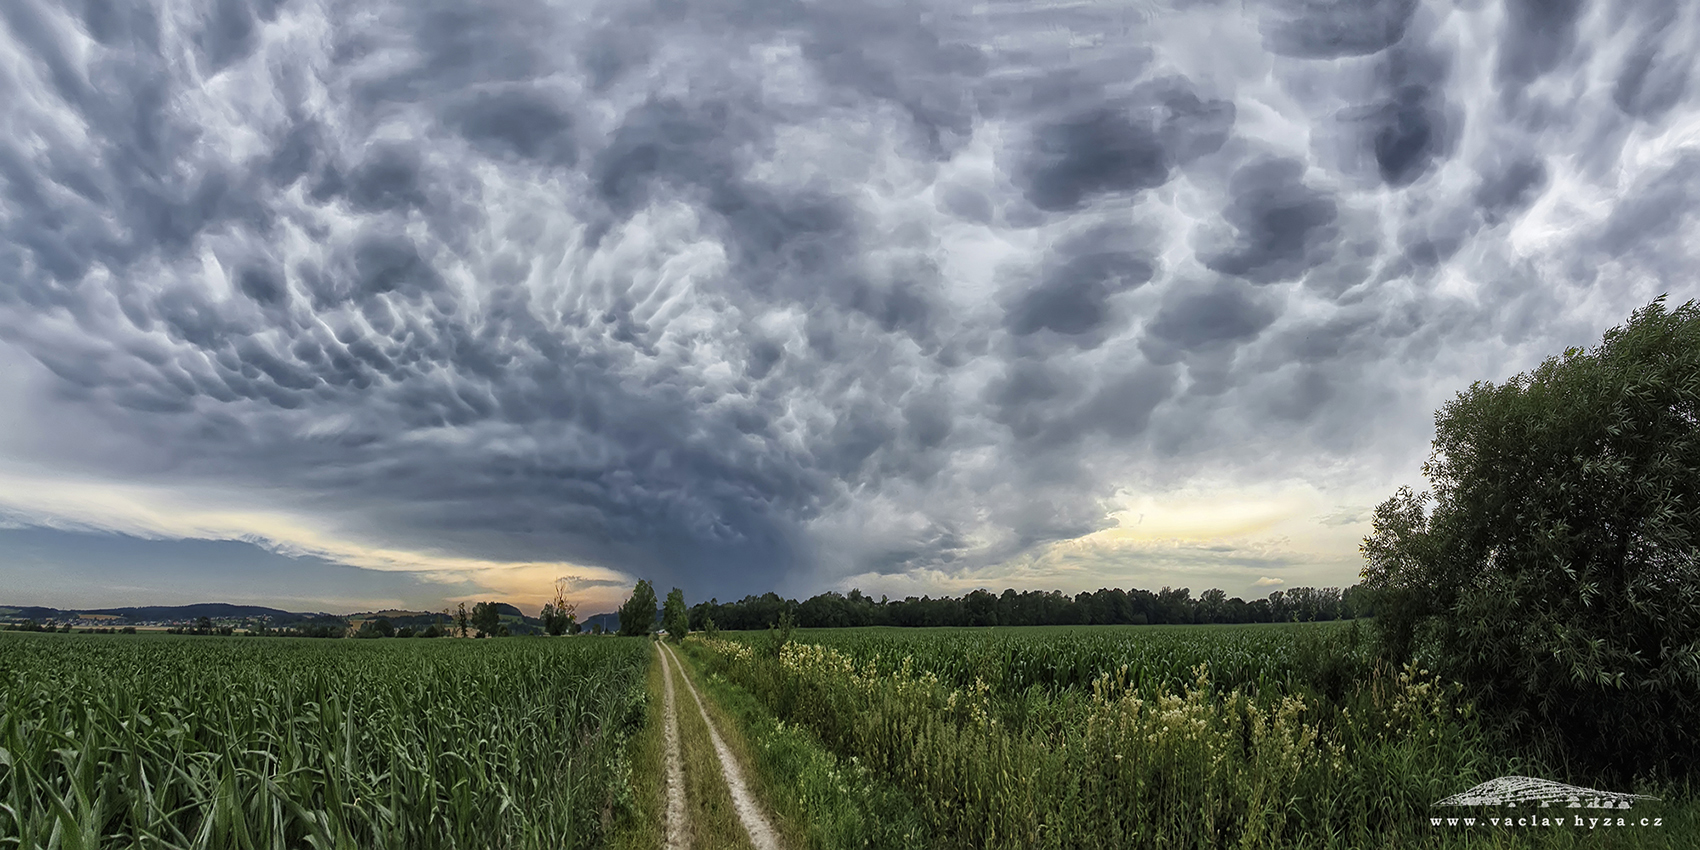 187 - Mammatus cloud